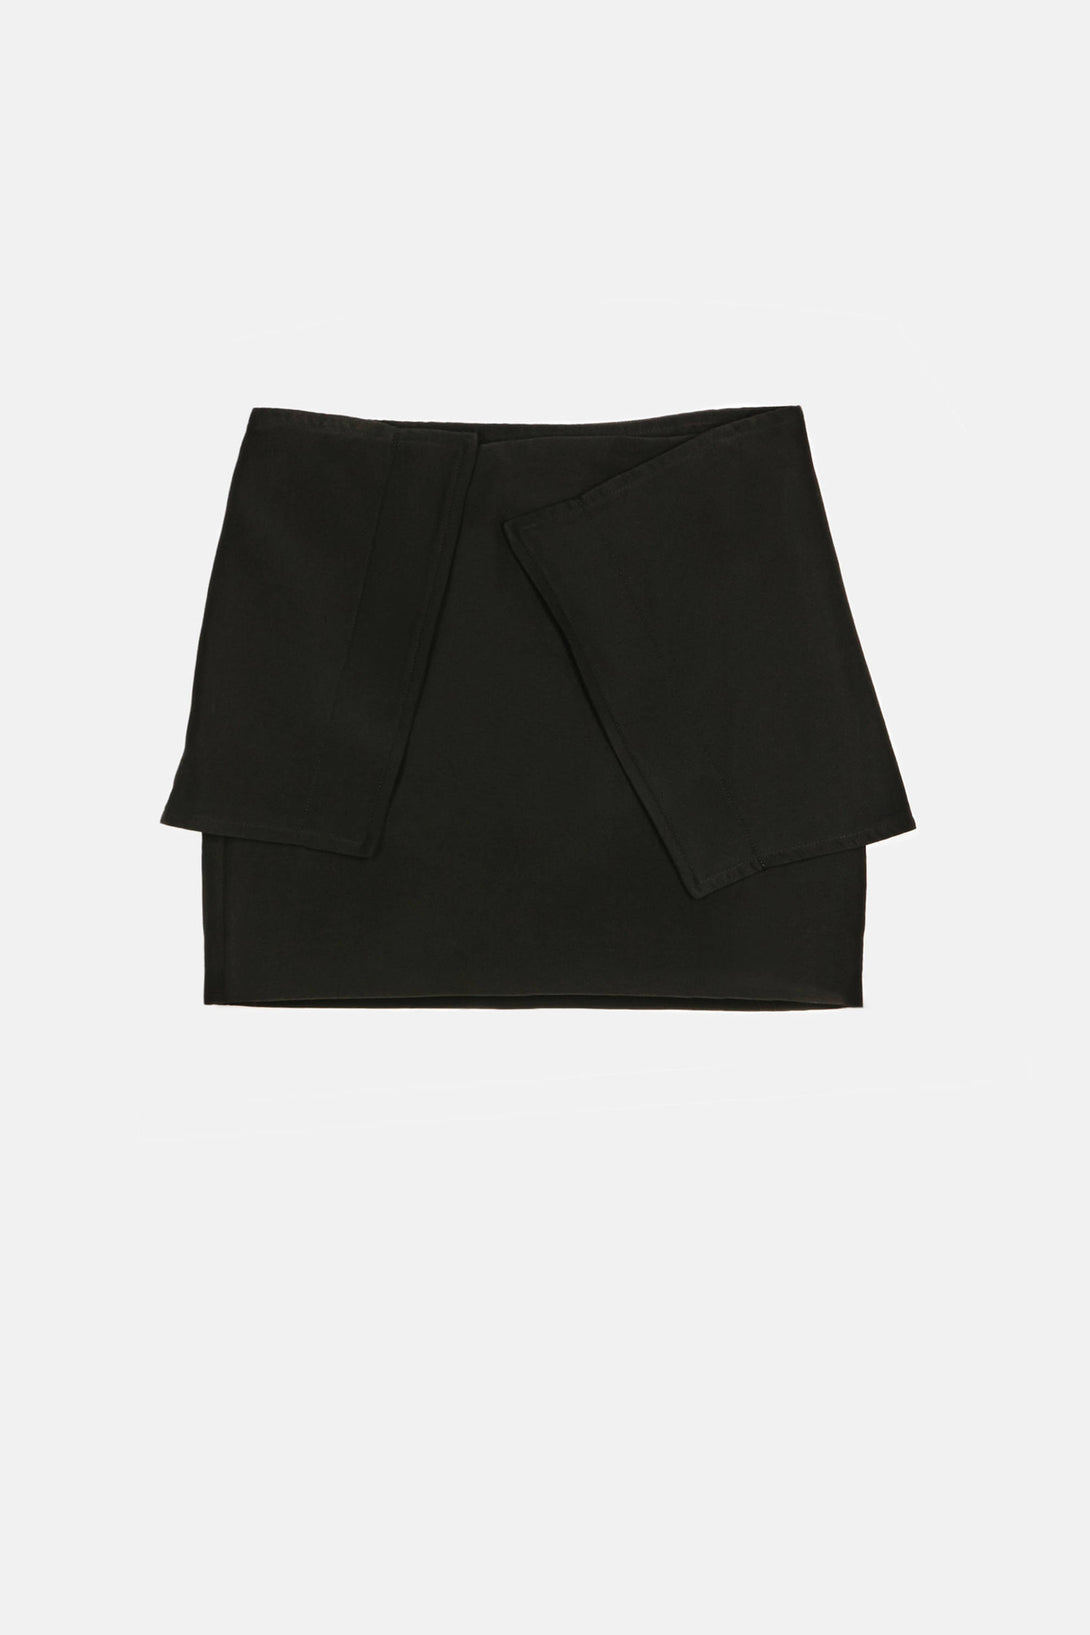 Brick Skirt - Black